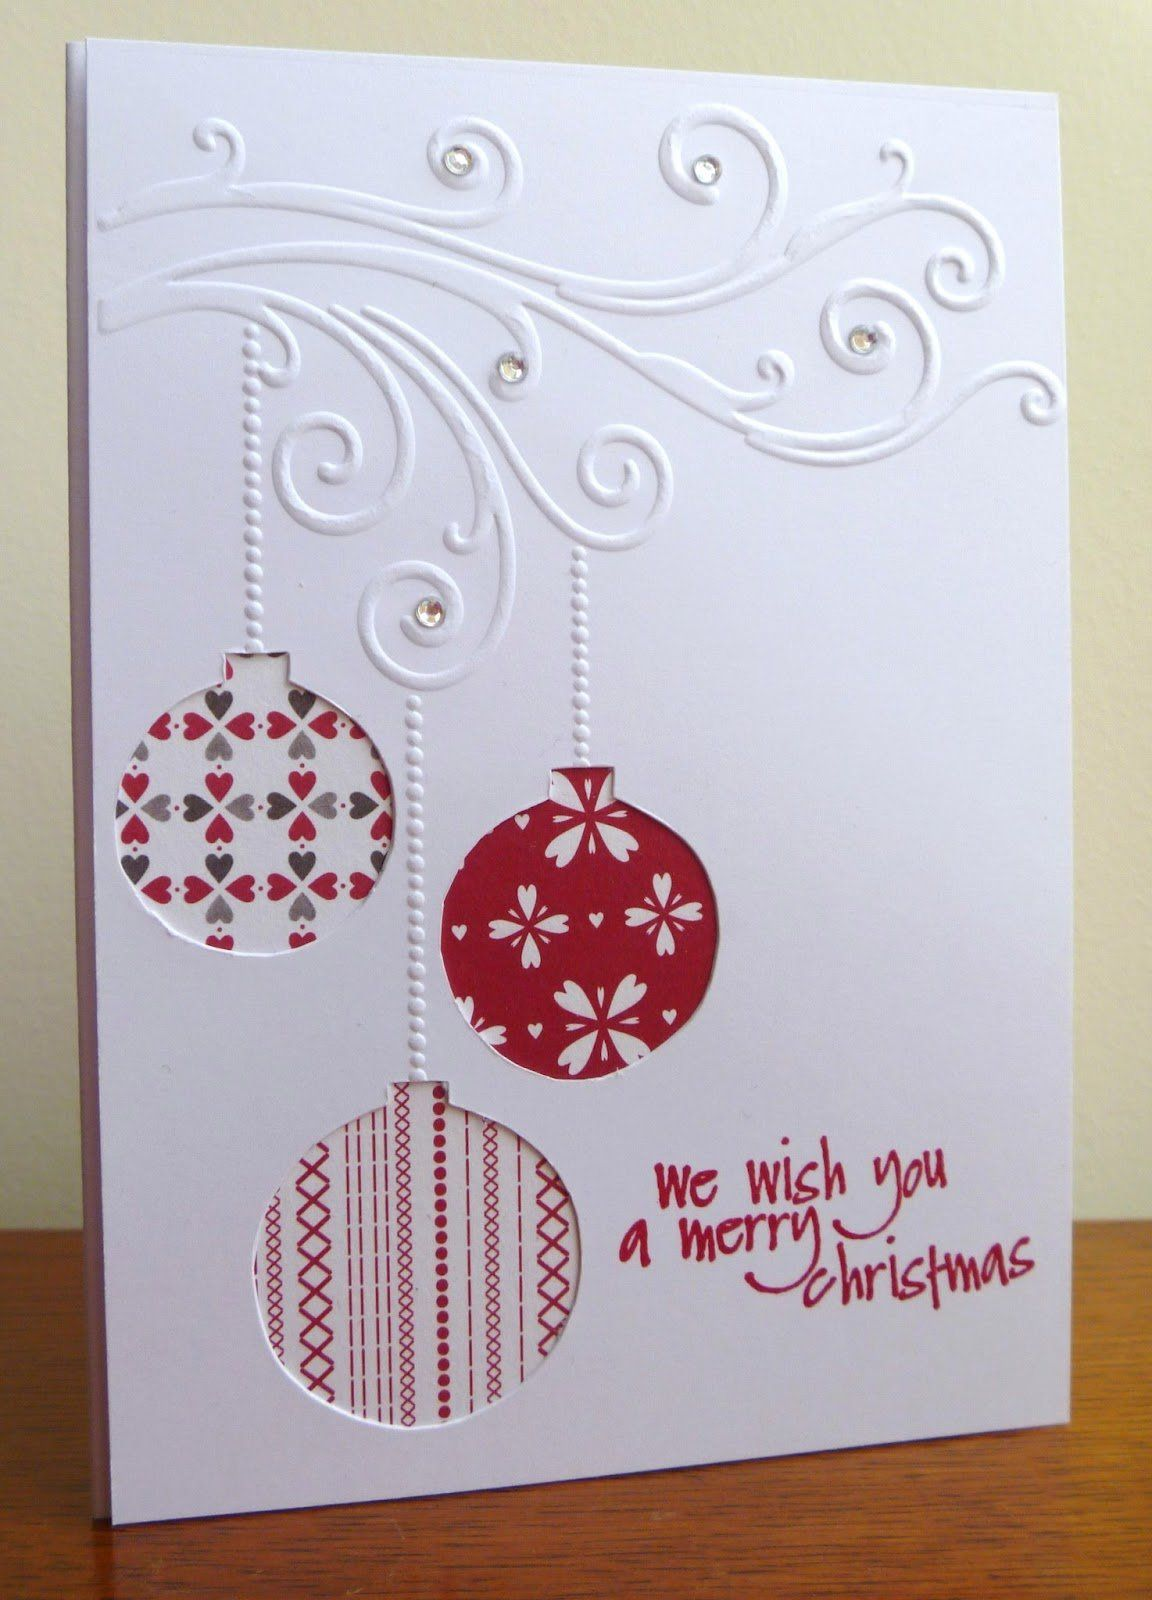 Christmas Card Ideas 2020 20 Most Popular and Thoughtful Christmas Card Ideas in 2020